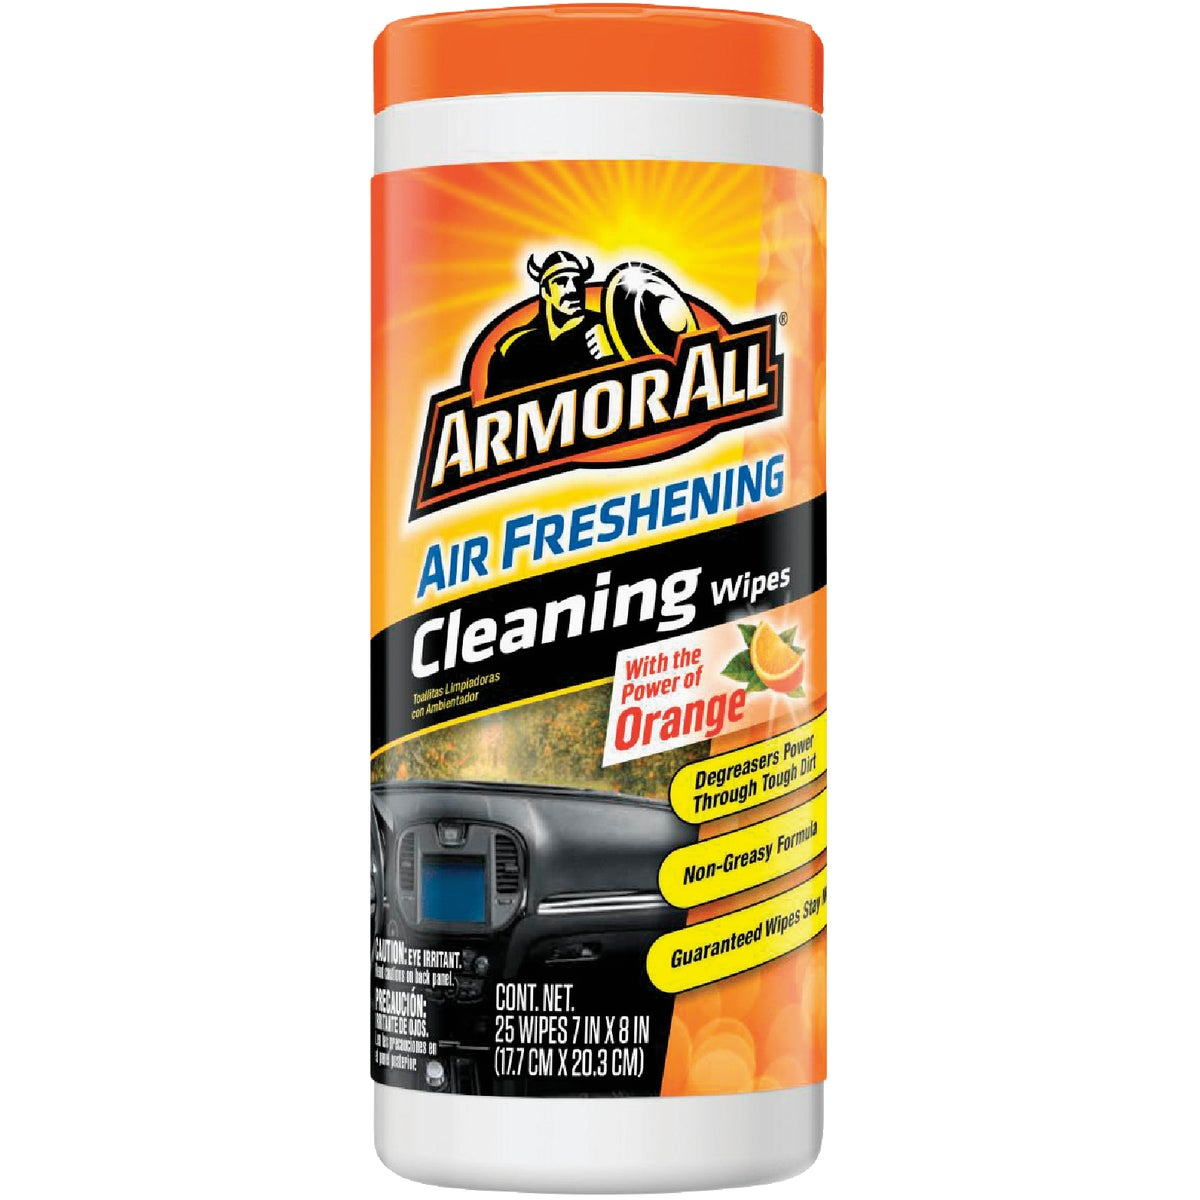 Clorox/Home Cleaning 25 ORANGE CLEANING WIPES 10831